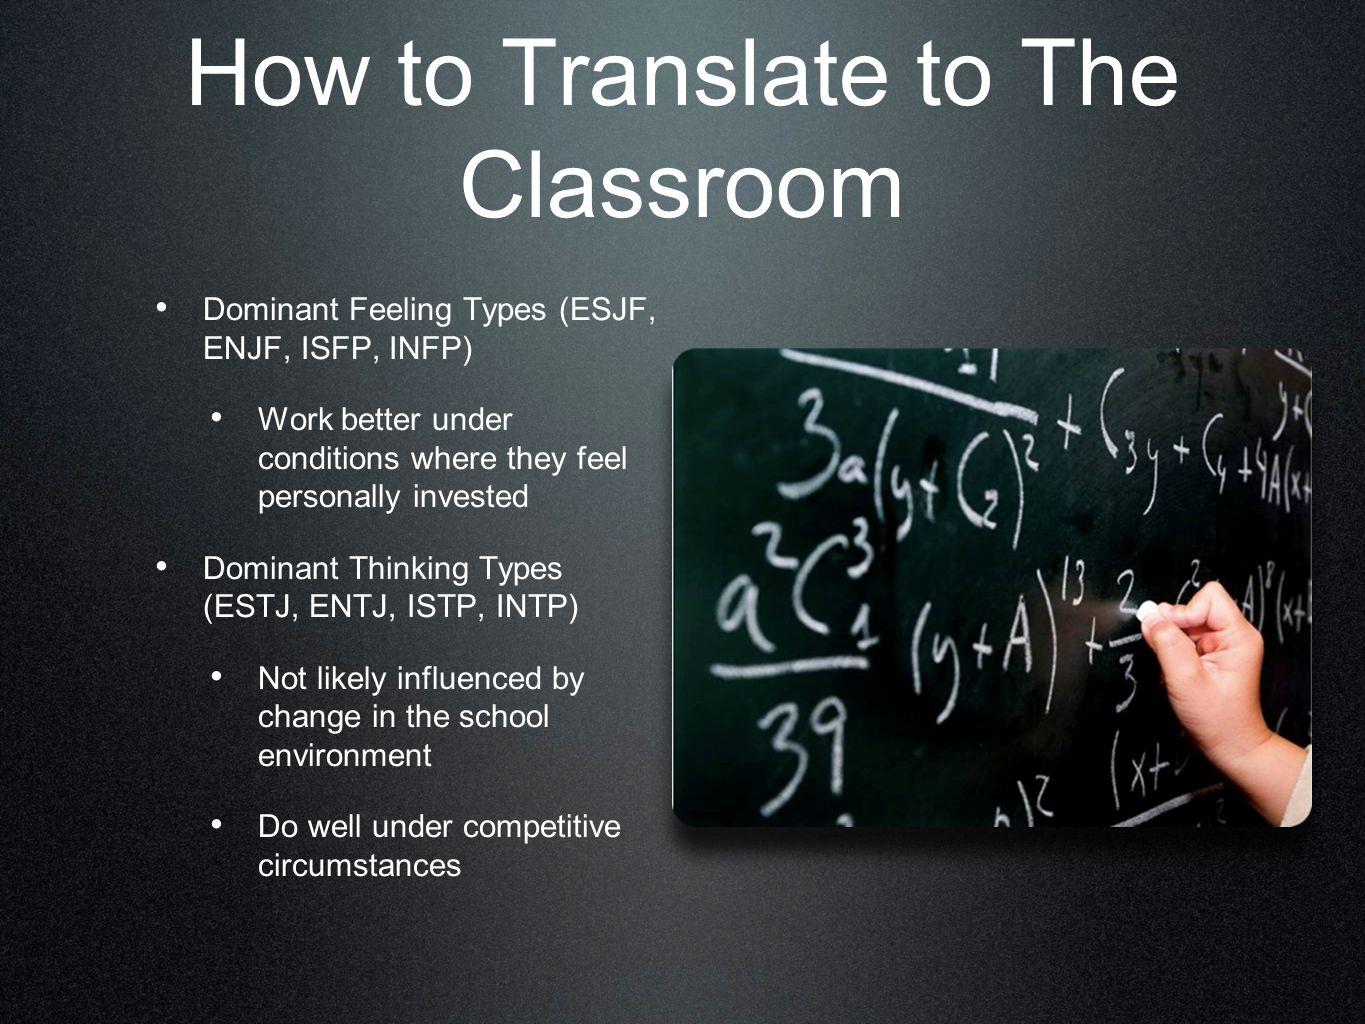 How to Translate to The Classroom Dominant Feeling Types (ESJF, ENJF, ISFP, INFP) Work better under conditions where they feel personally invested Dominant Thinking Types (ESTJ, ENTJ, ISTP, INTP) Not likely influenced by change in the school environment Do well under competitive circumstances